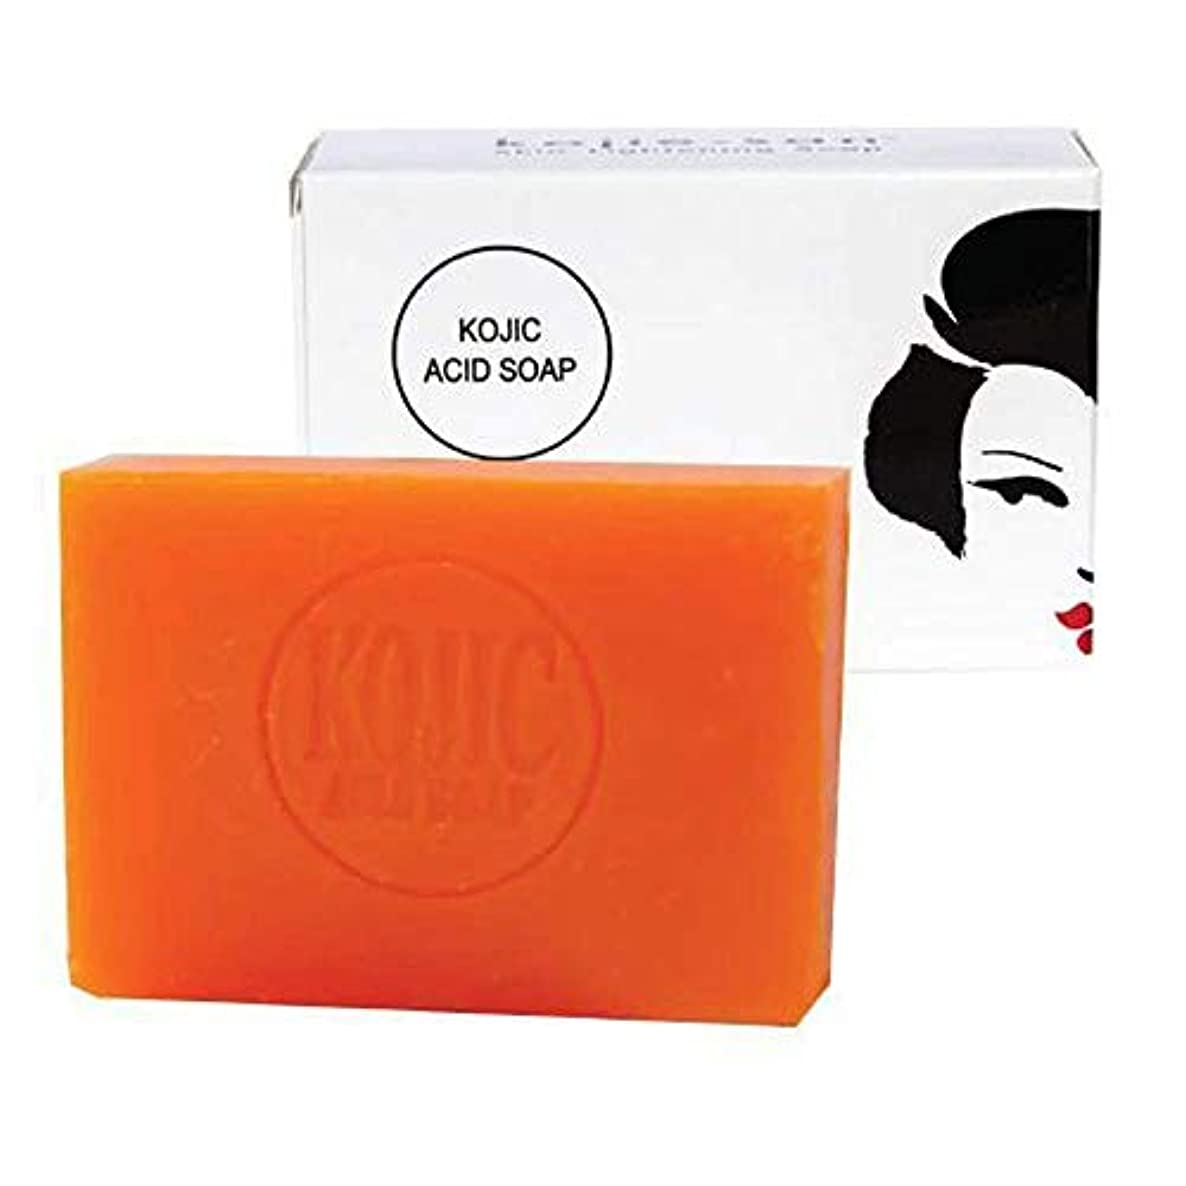 Kojie San Skin Lightening Kojic Acid Soap 2 Bars - 65G Fades Age Spots, Freckles, And Other Signs Of Sun Damage...